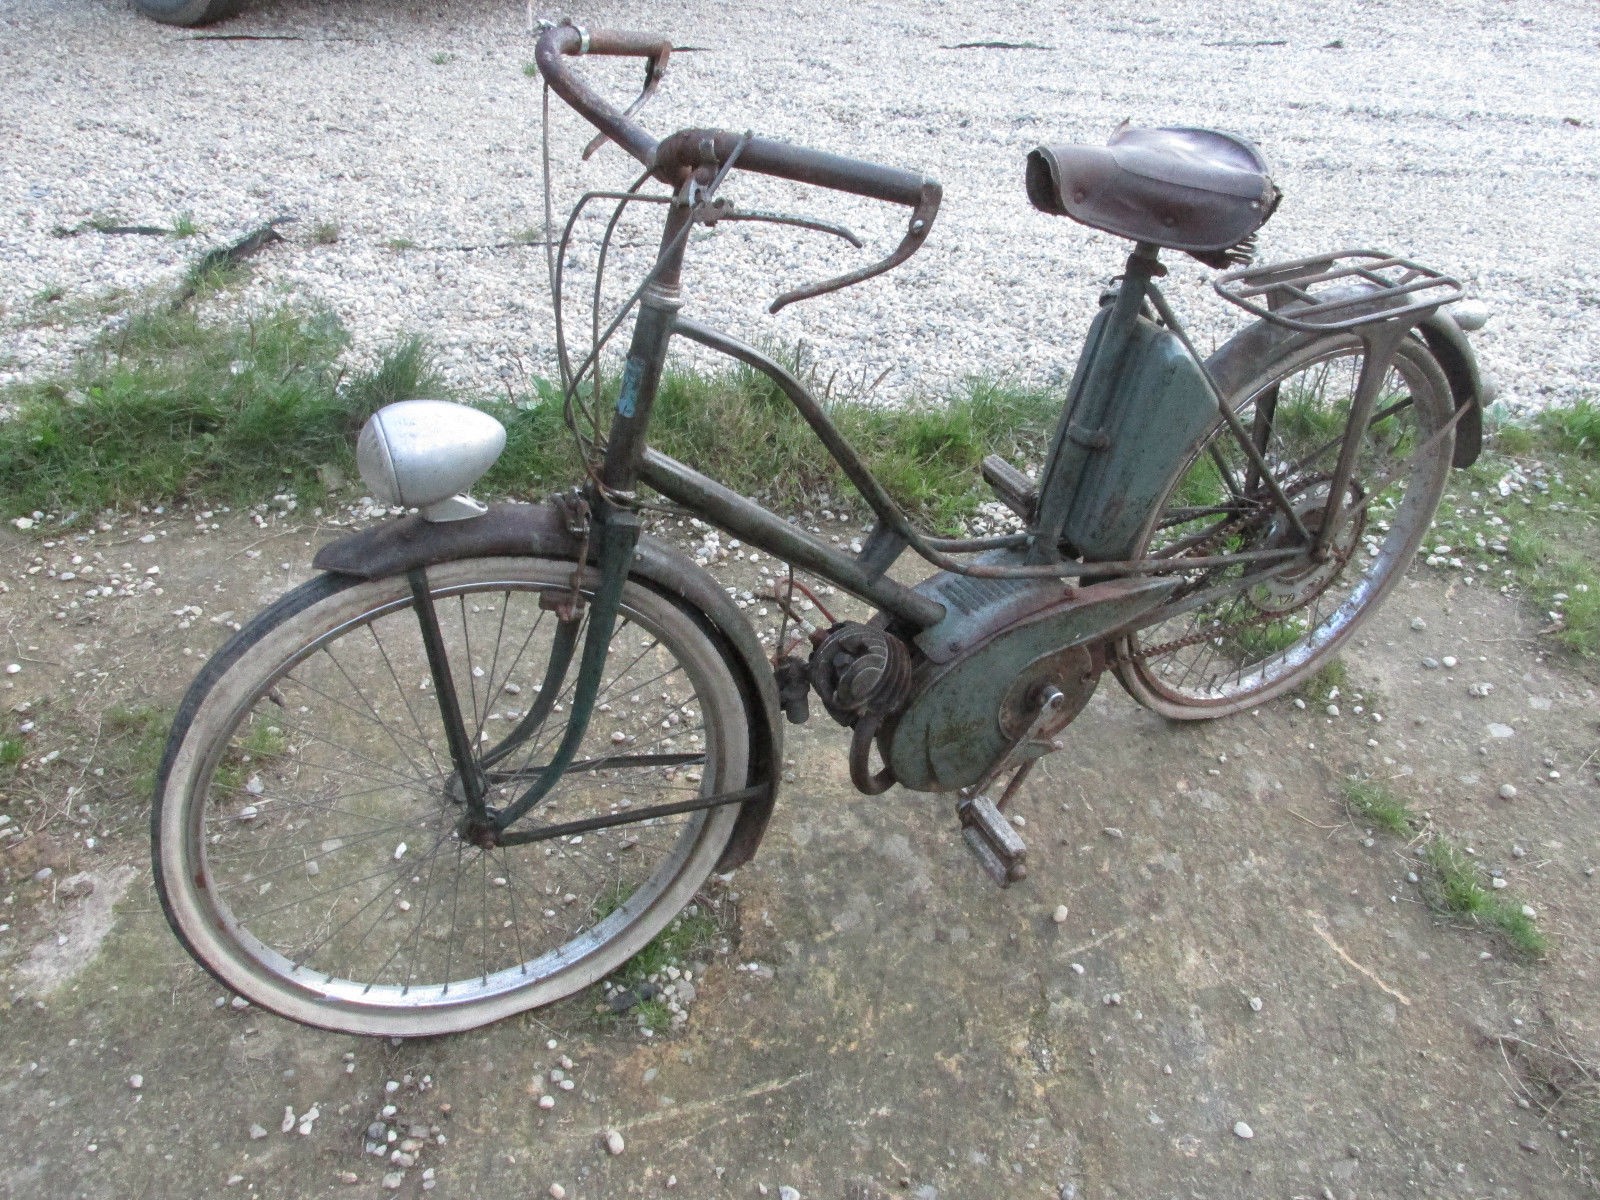 1949 griffon solex reducing collection mobylette french moped motobecane. Black Bedroom Furniture Sets. Home Design Ideas